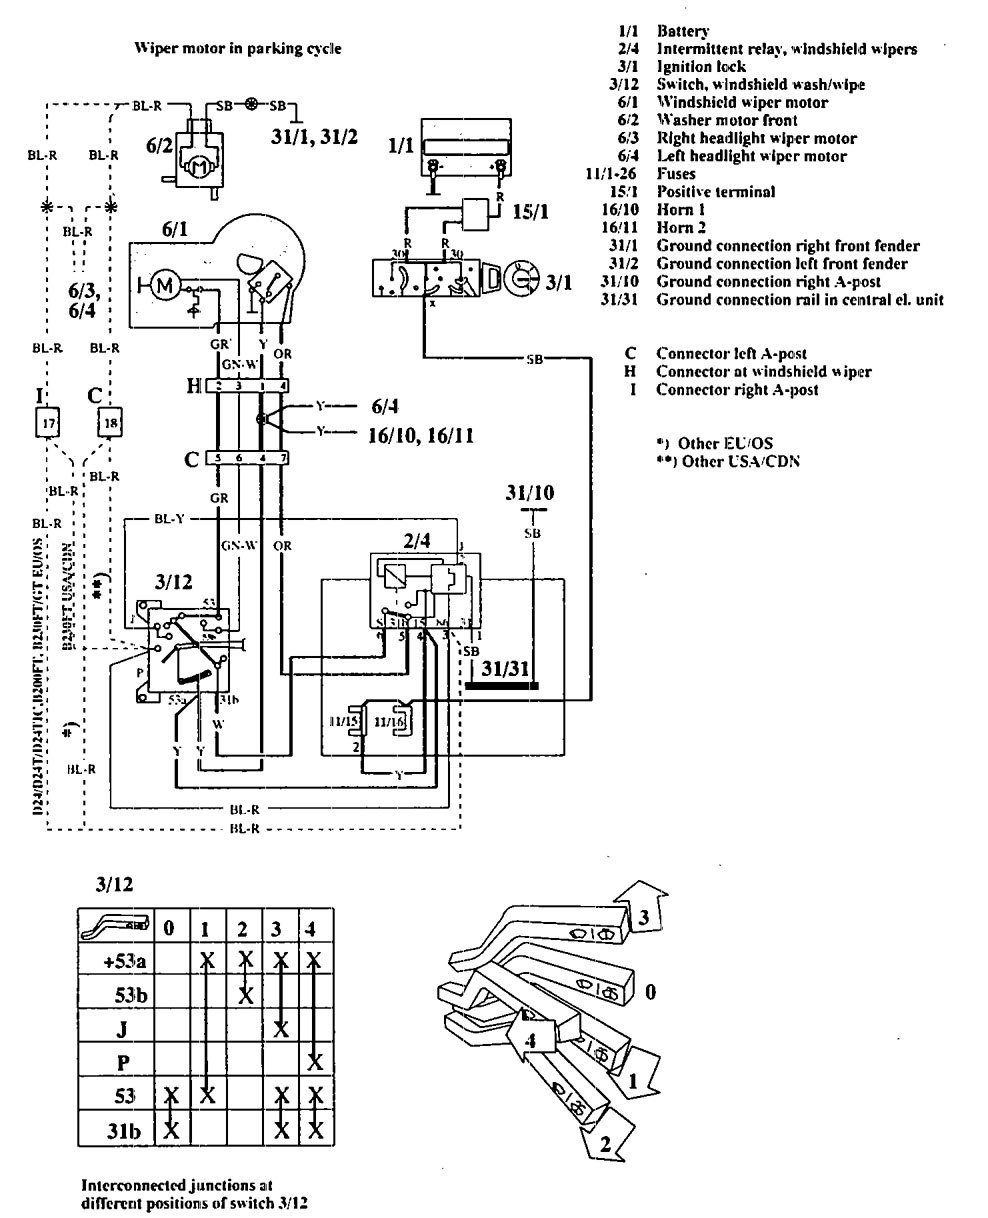 Volvo 240 Wiper Wiring Diagram Schematics 1983 940 1992 Diagrams Washer Carknowledge Engine